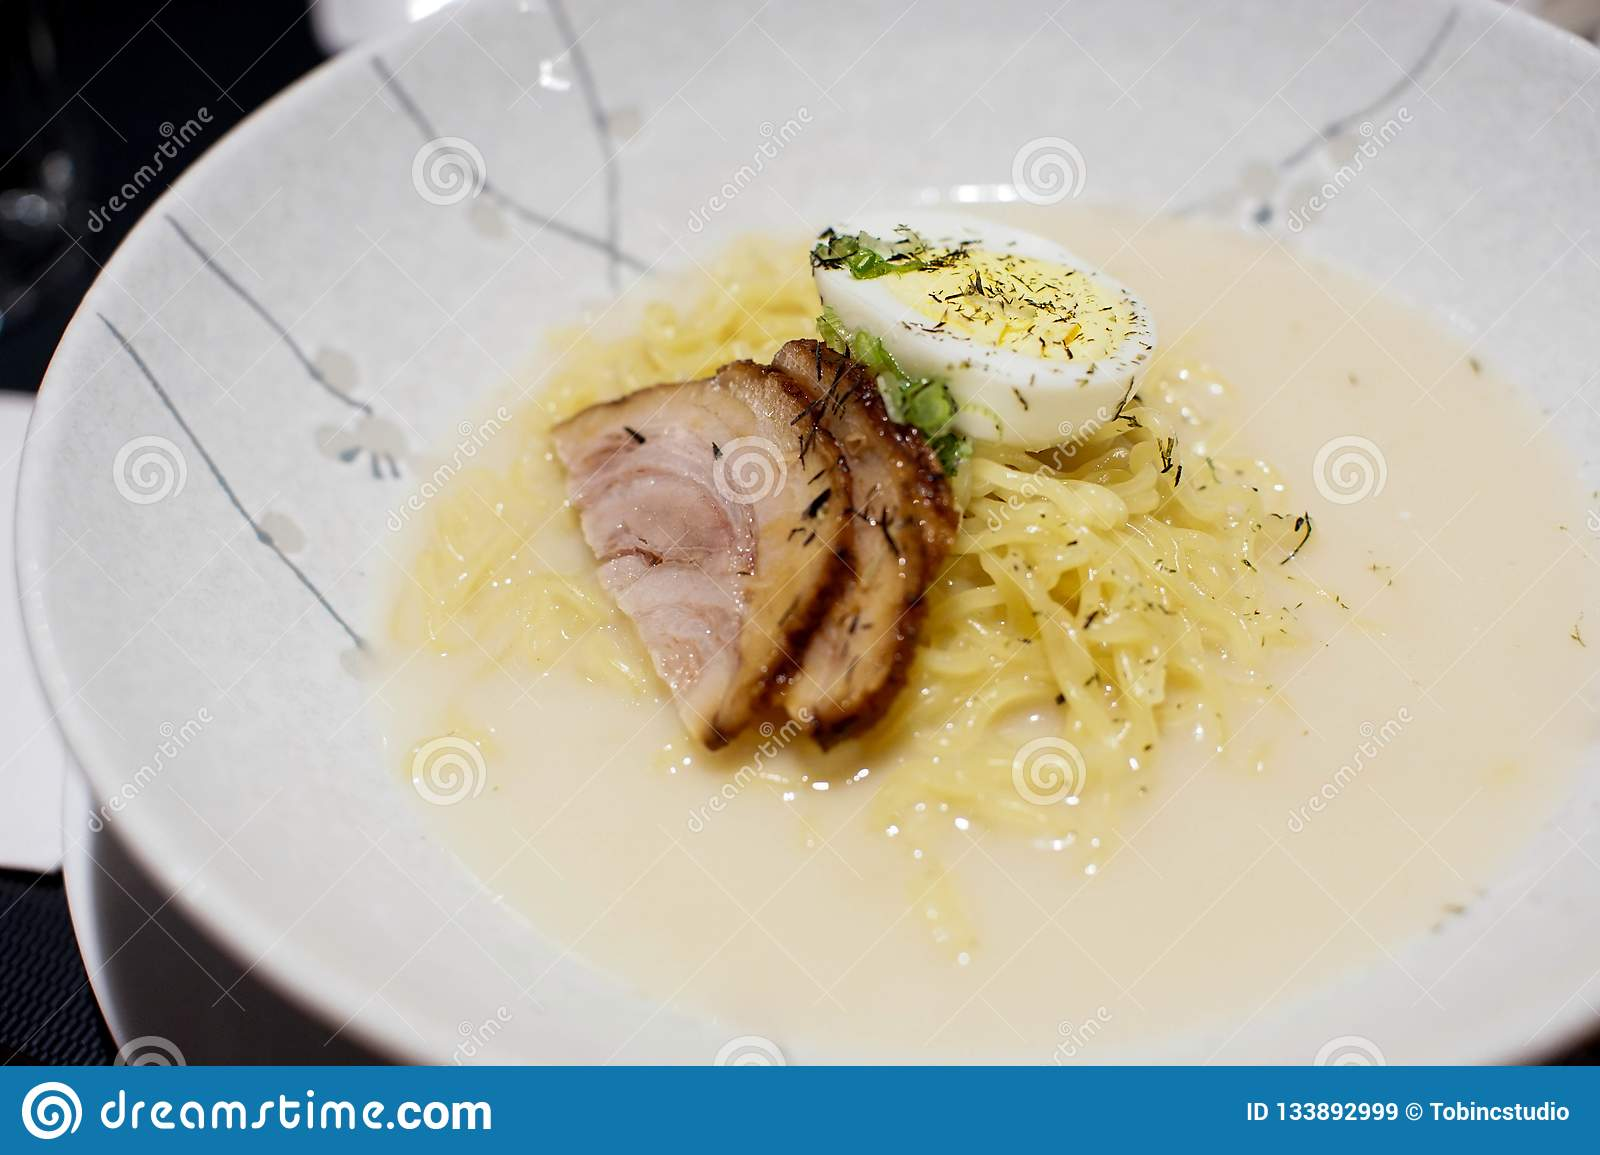 Bowl Of Ramen Noodles With Eggs And Beef Stock Image - Image